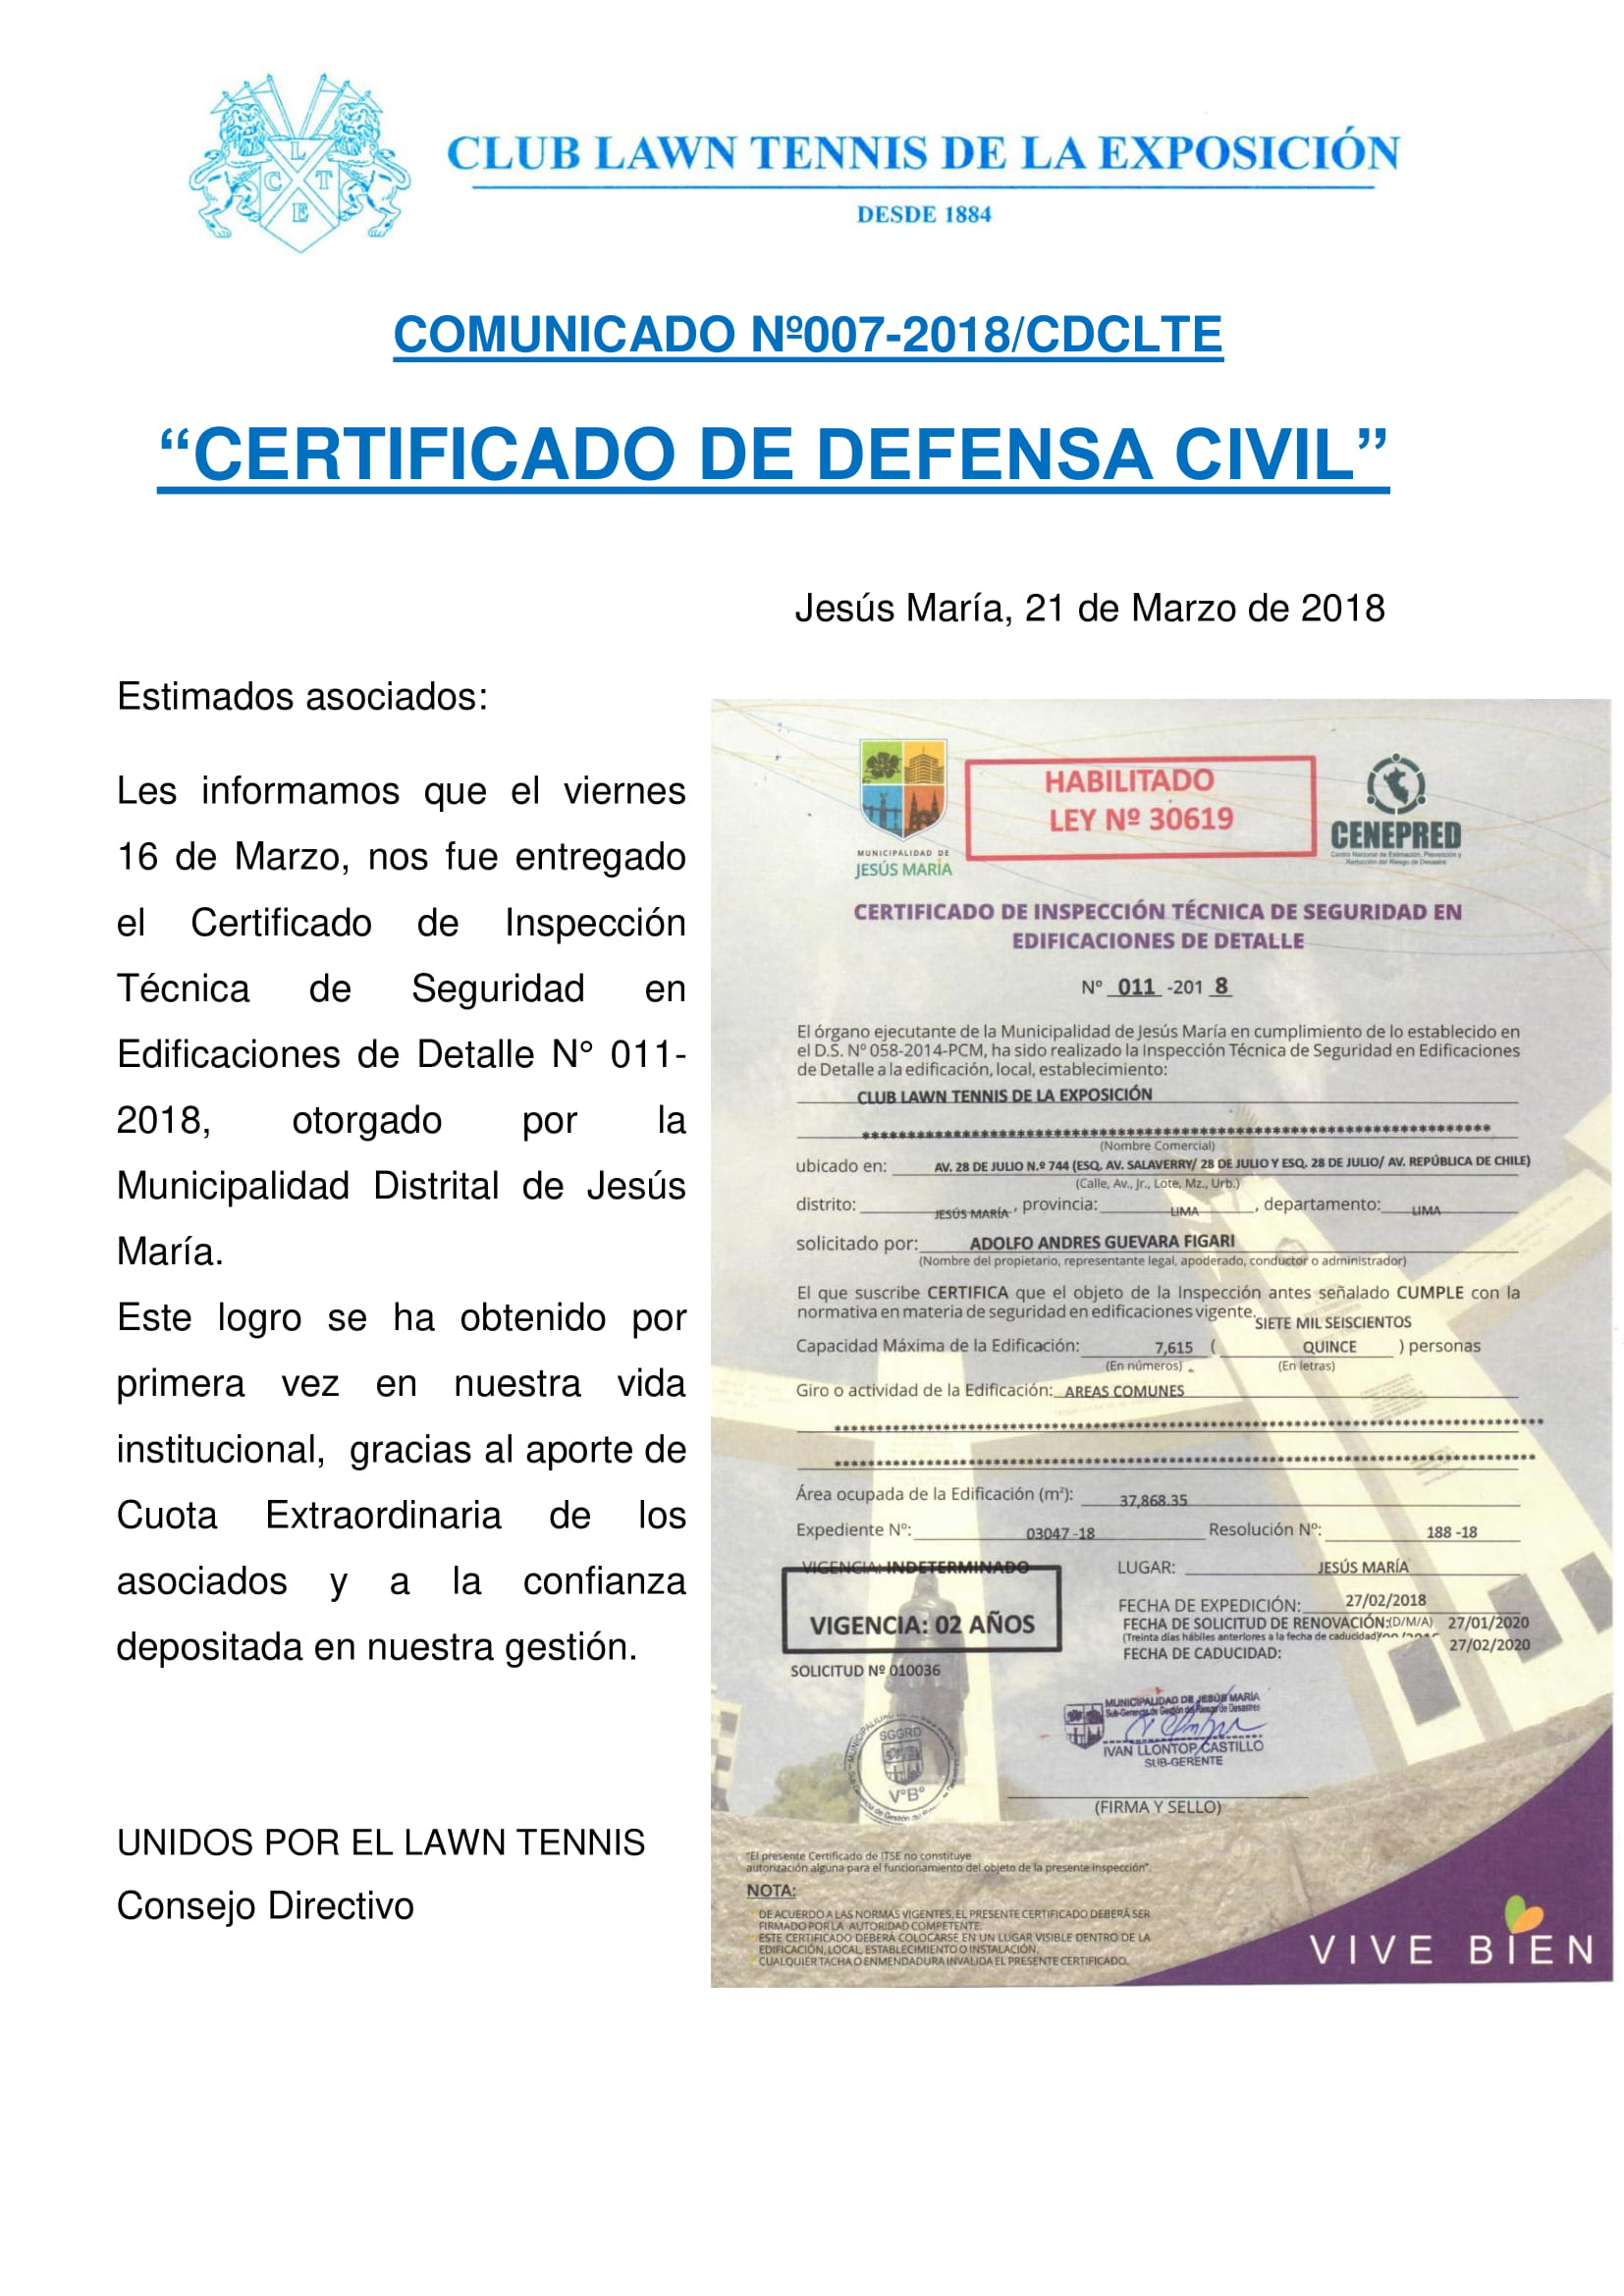 Comunicado 007 - CERTIFICADO DE DEFENSA CIVIL